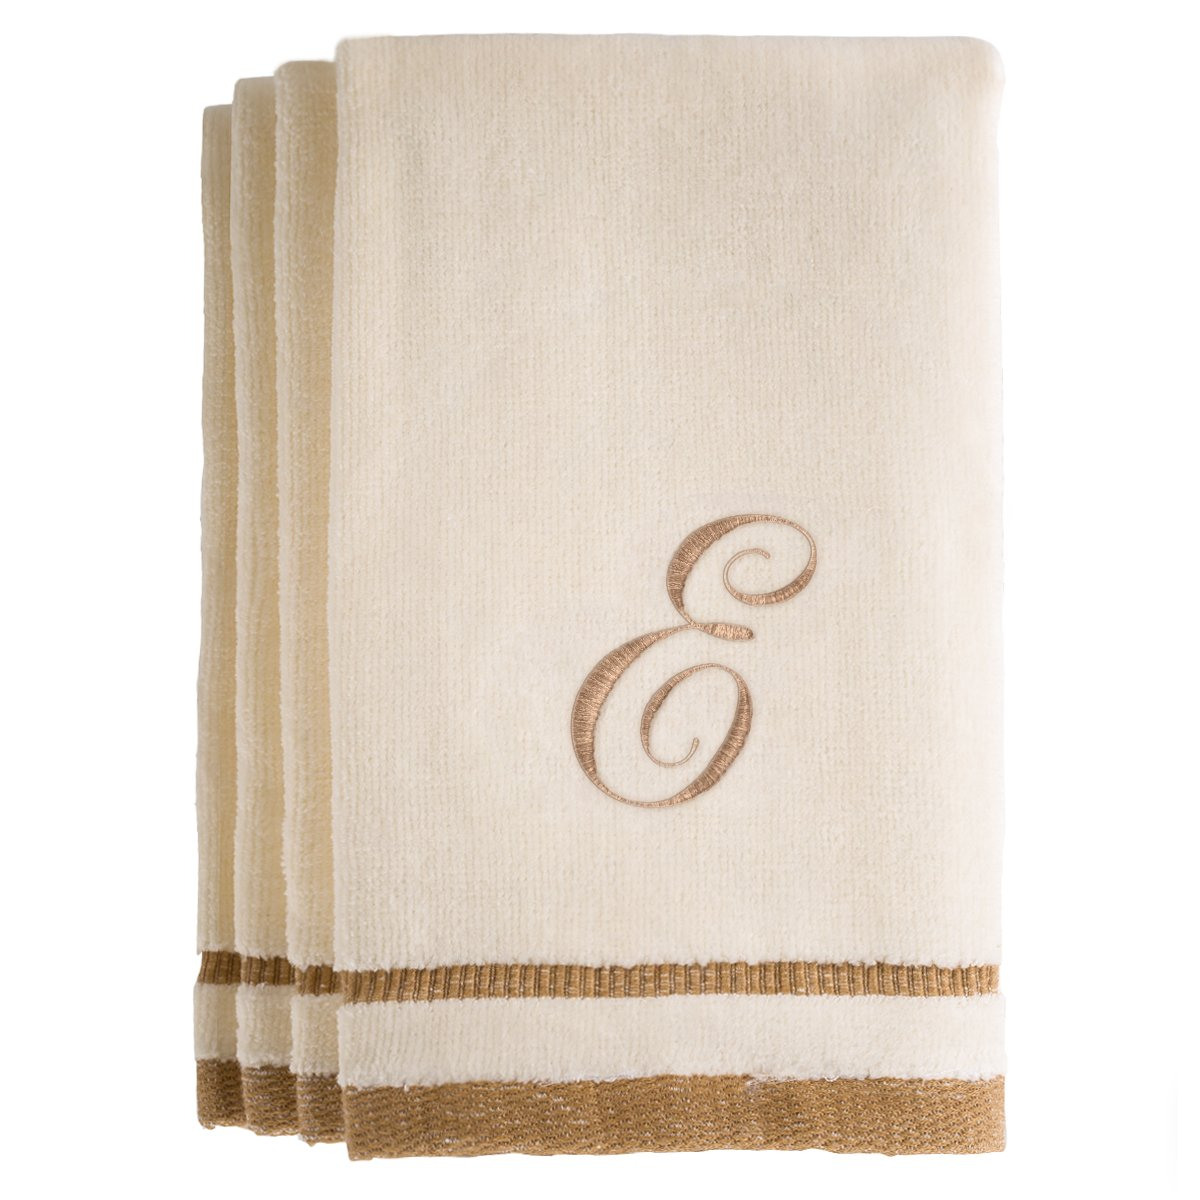 Monogrammed Gifts, Fingertip Towels, 11 x 18 Inches - Set of 4- Decorative Golden Brown Embroidered Towel - Extra Absorbent 100% Cotton- Personalized Gift- for Bathroom/Kitchen- Initial E (Ivory)